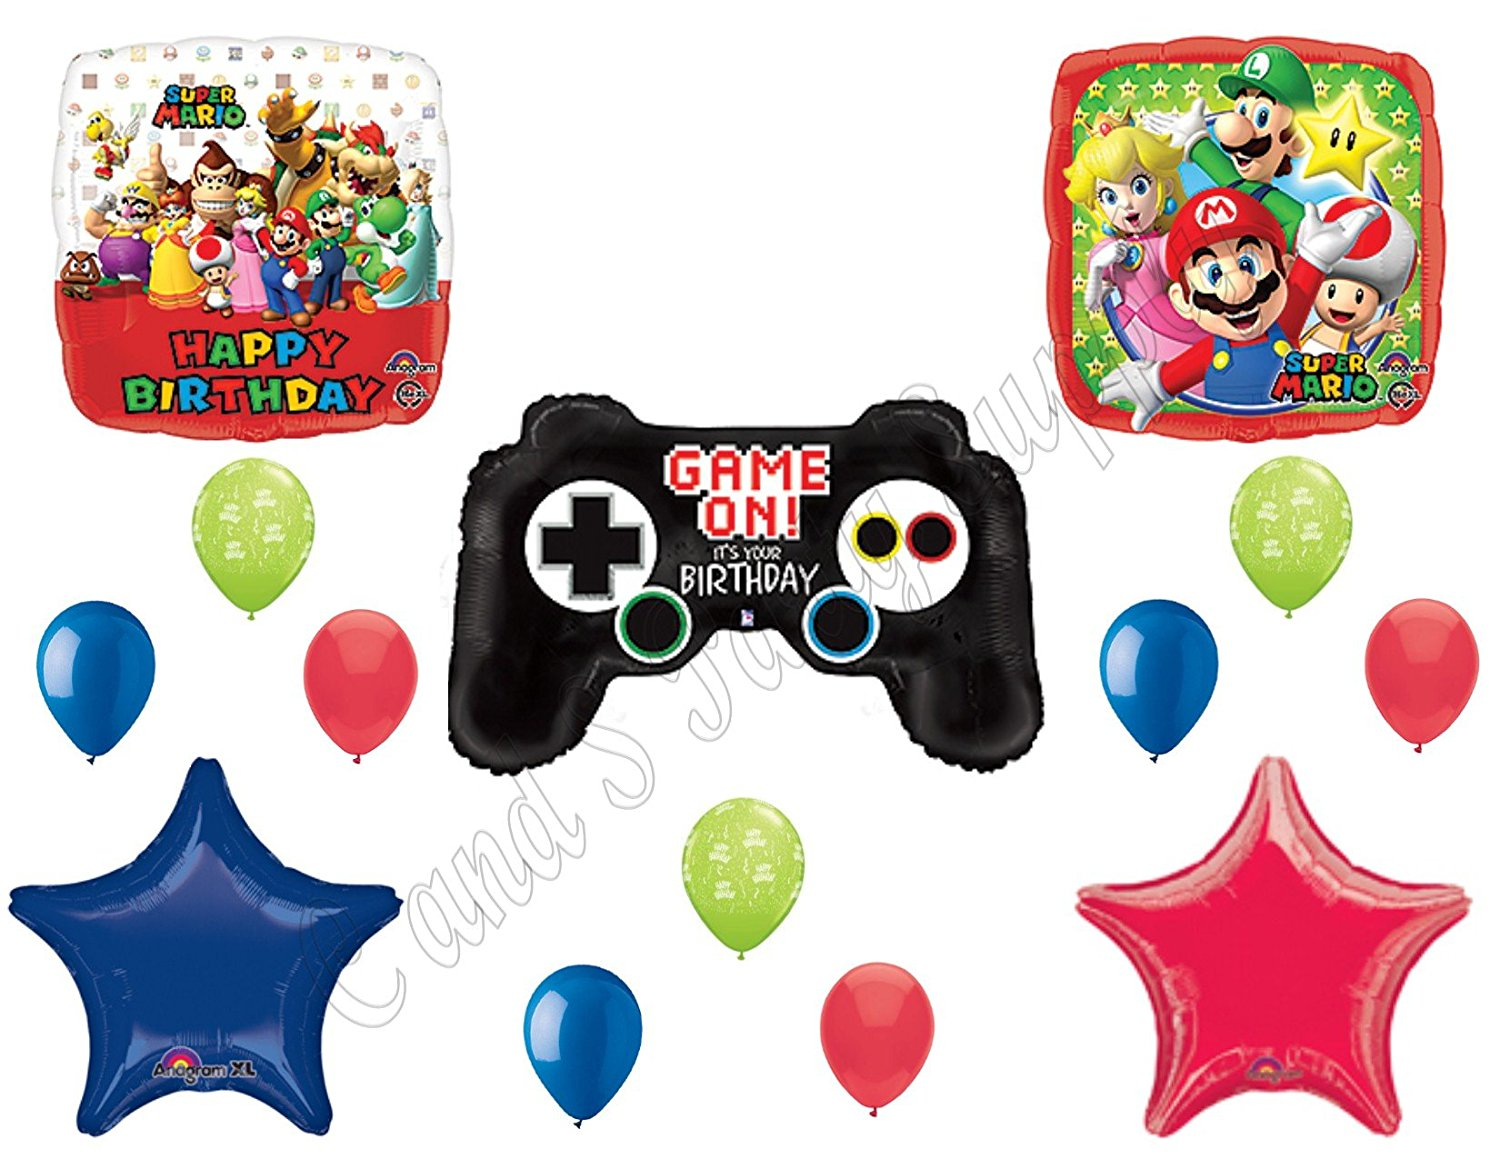 SUPER MARIO BROTHERS Video Game Birthday Balloons Decoration Supplies Party by Anagram